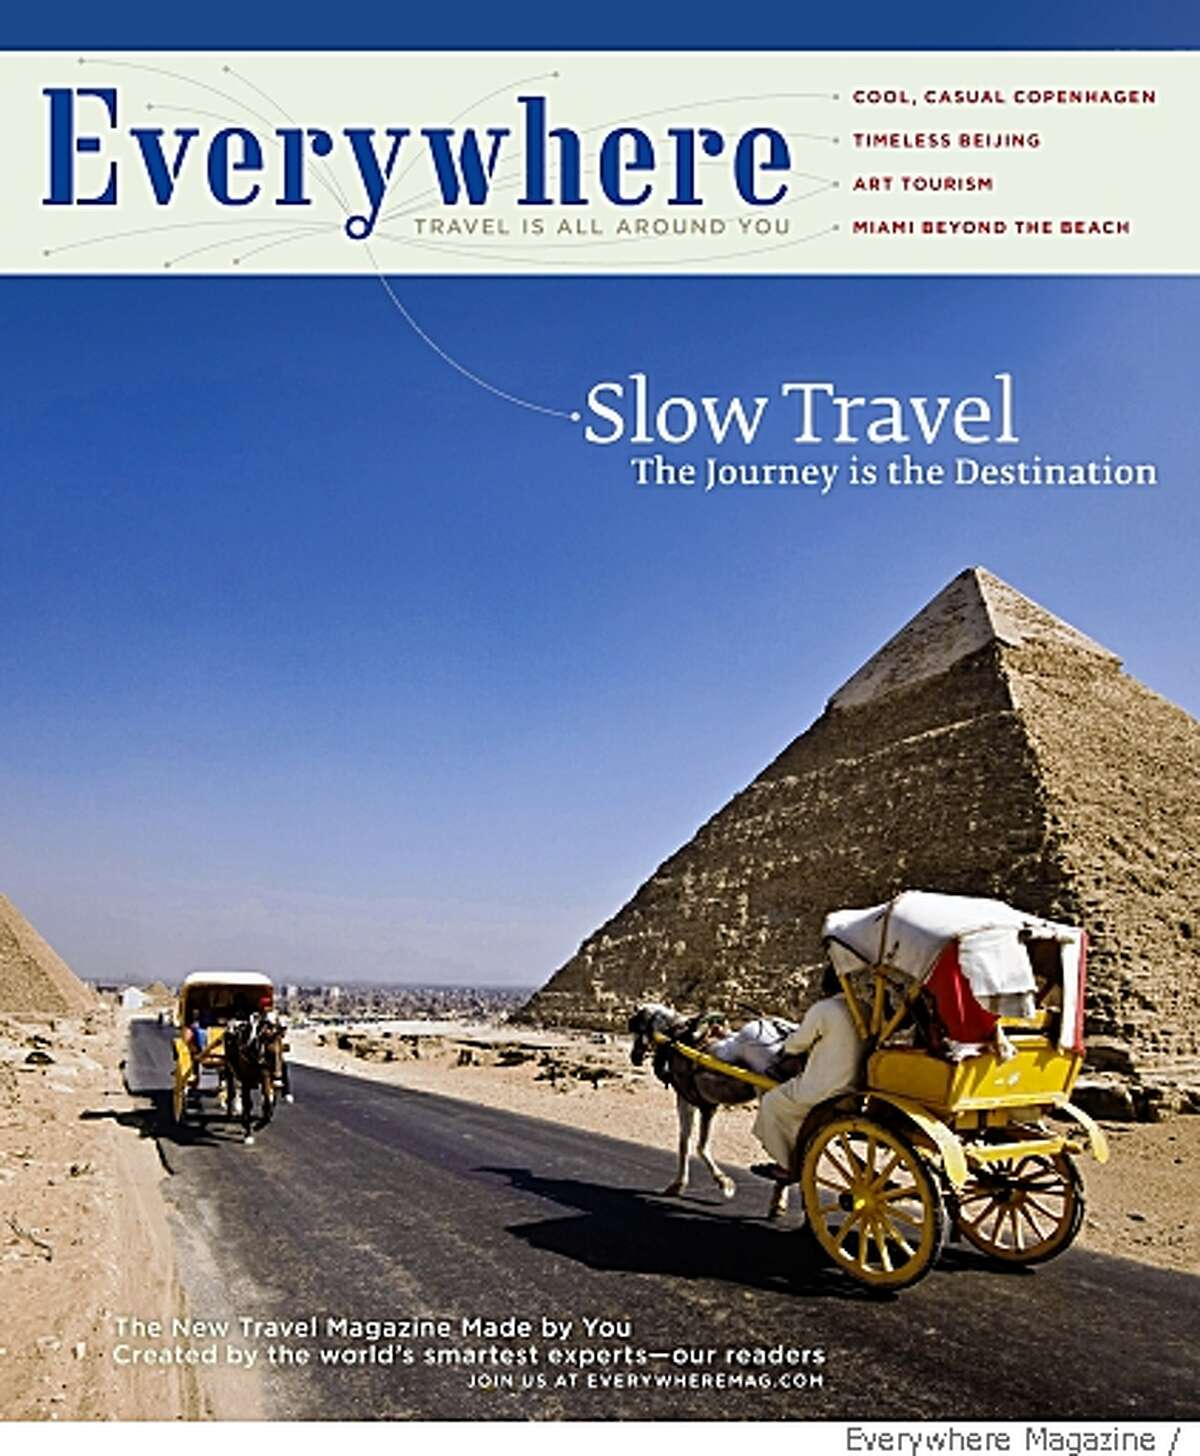 Cover shot for the travel magazine